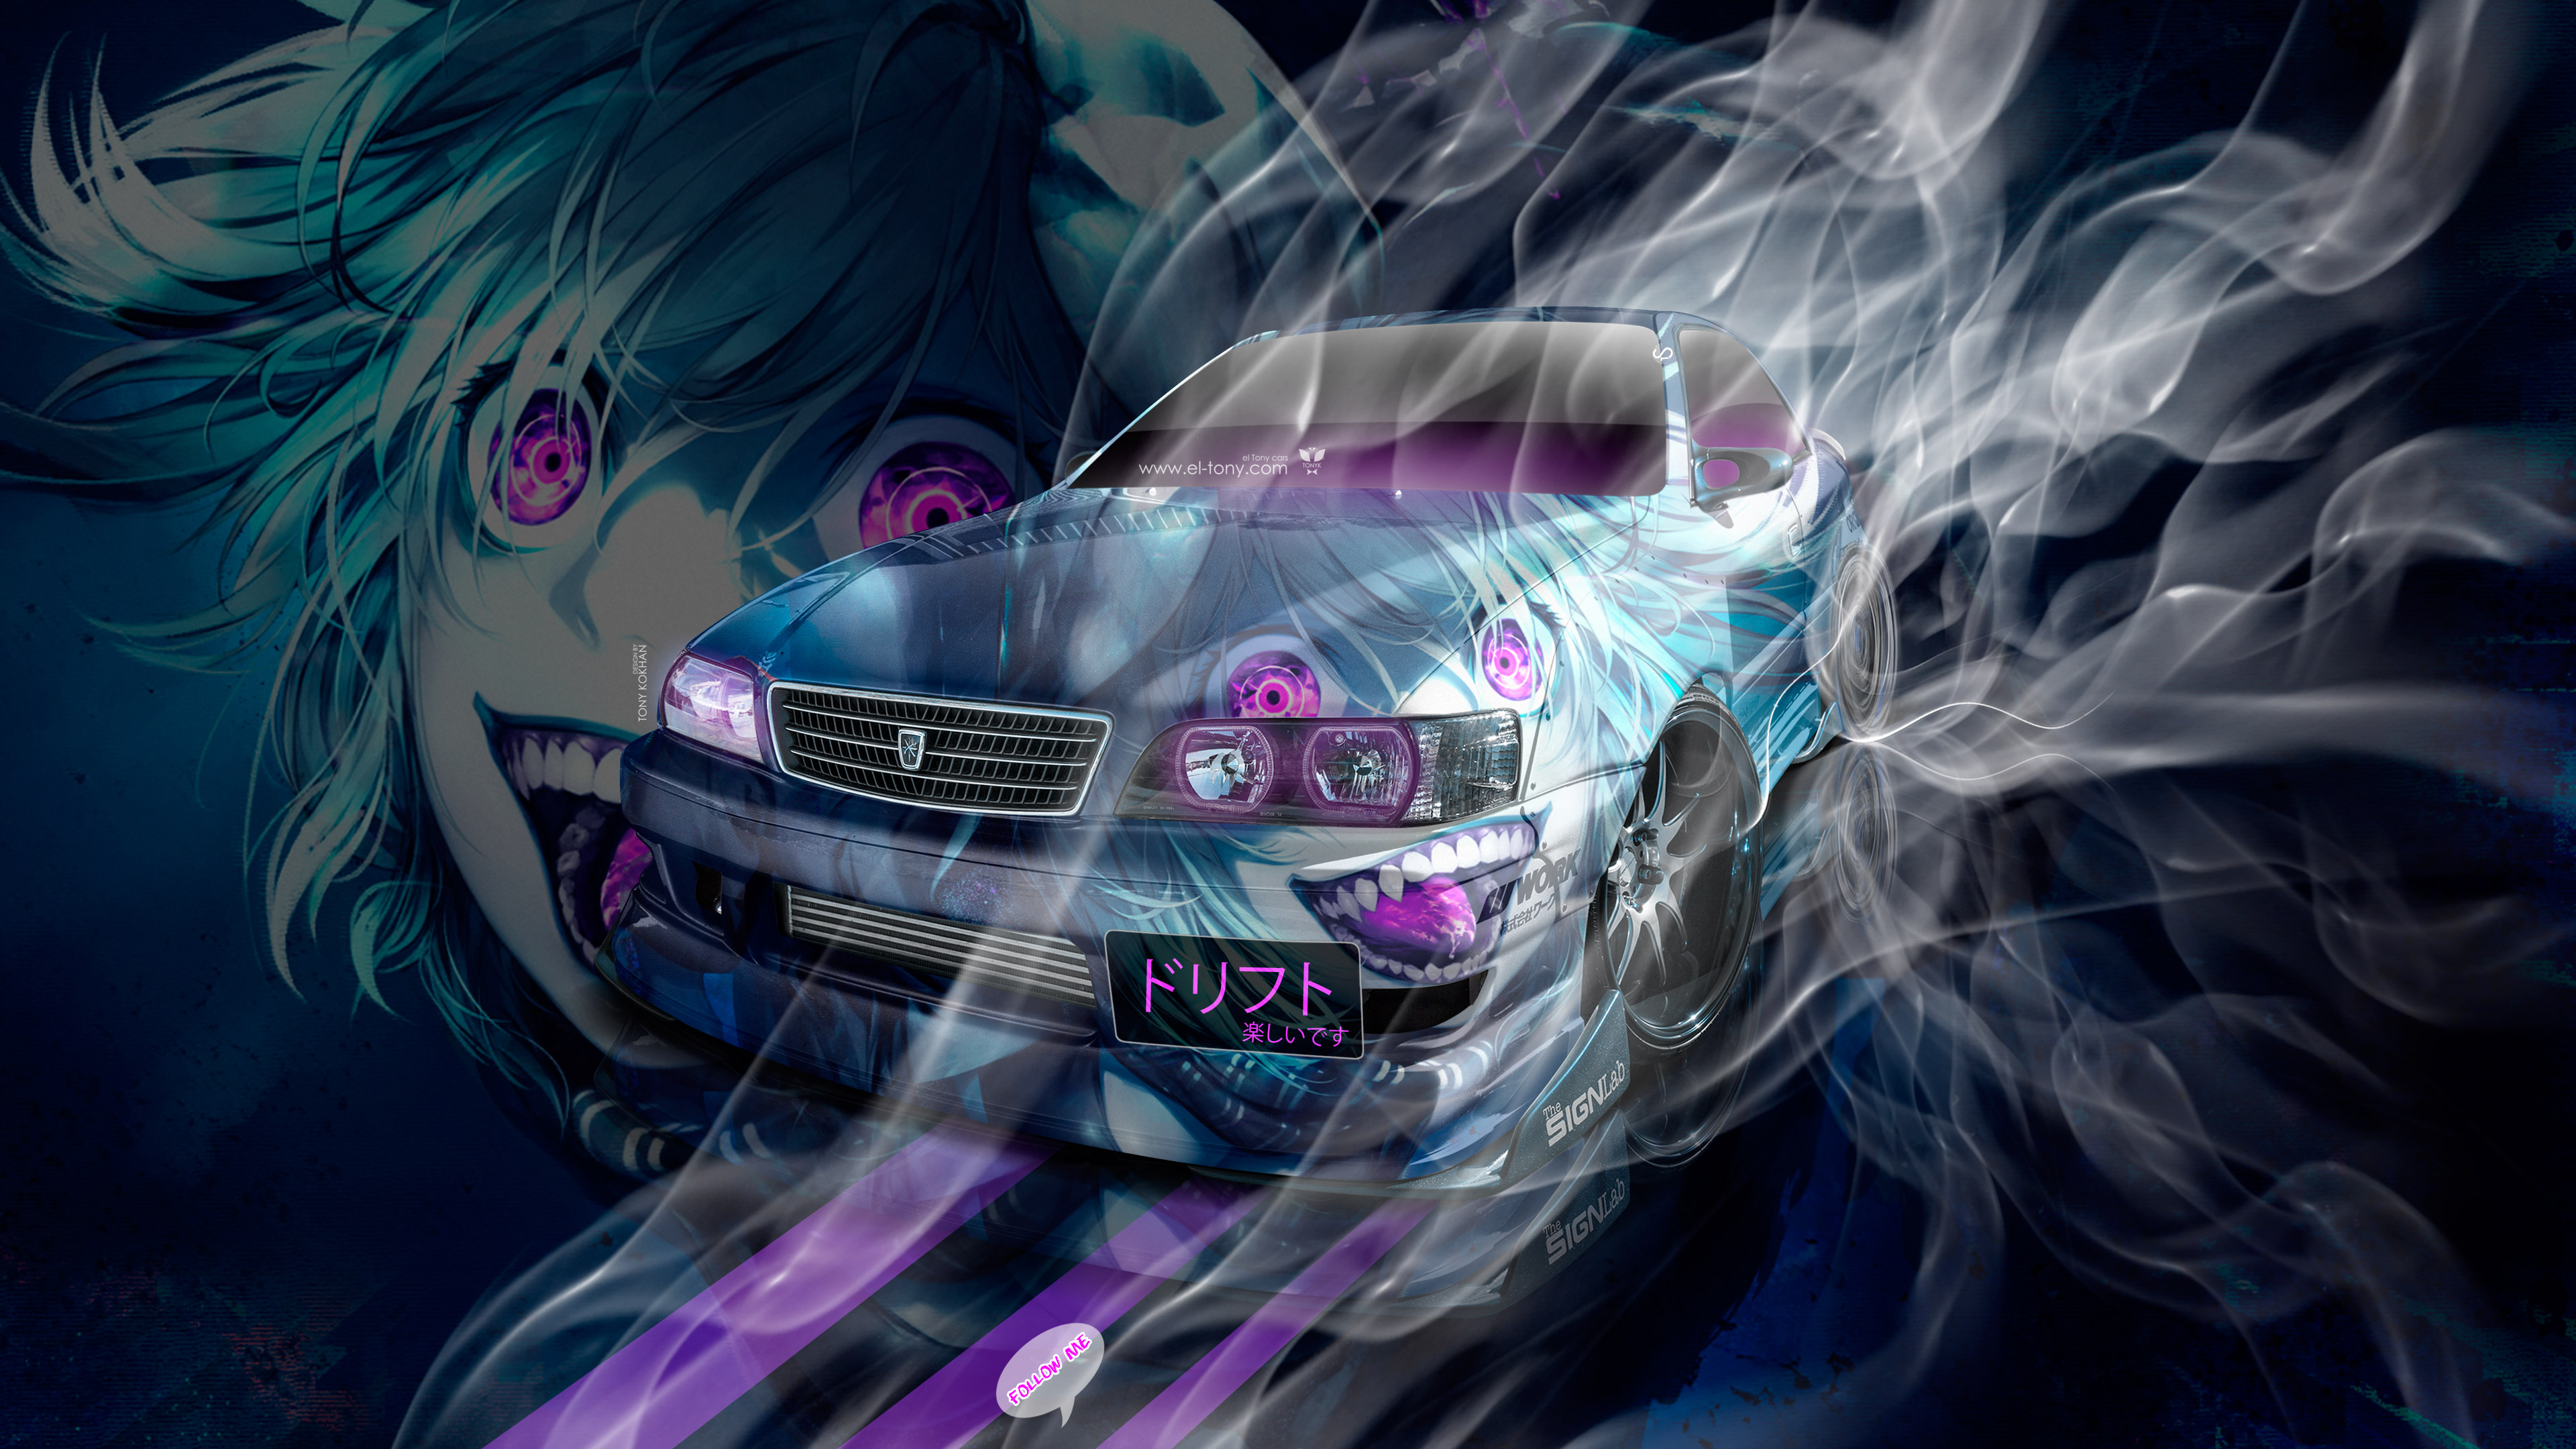 Toyota-Chaser-JZX100-JDM-Tuning-3D-Super-Anime-Boy-Aerography-Smoke-Drift-Art-Car-2018-Multicolors-4K-Wallpapers-design-by-Tony-Kokhan-www.el-tony.com-image